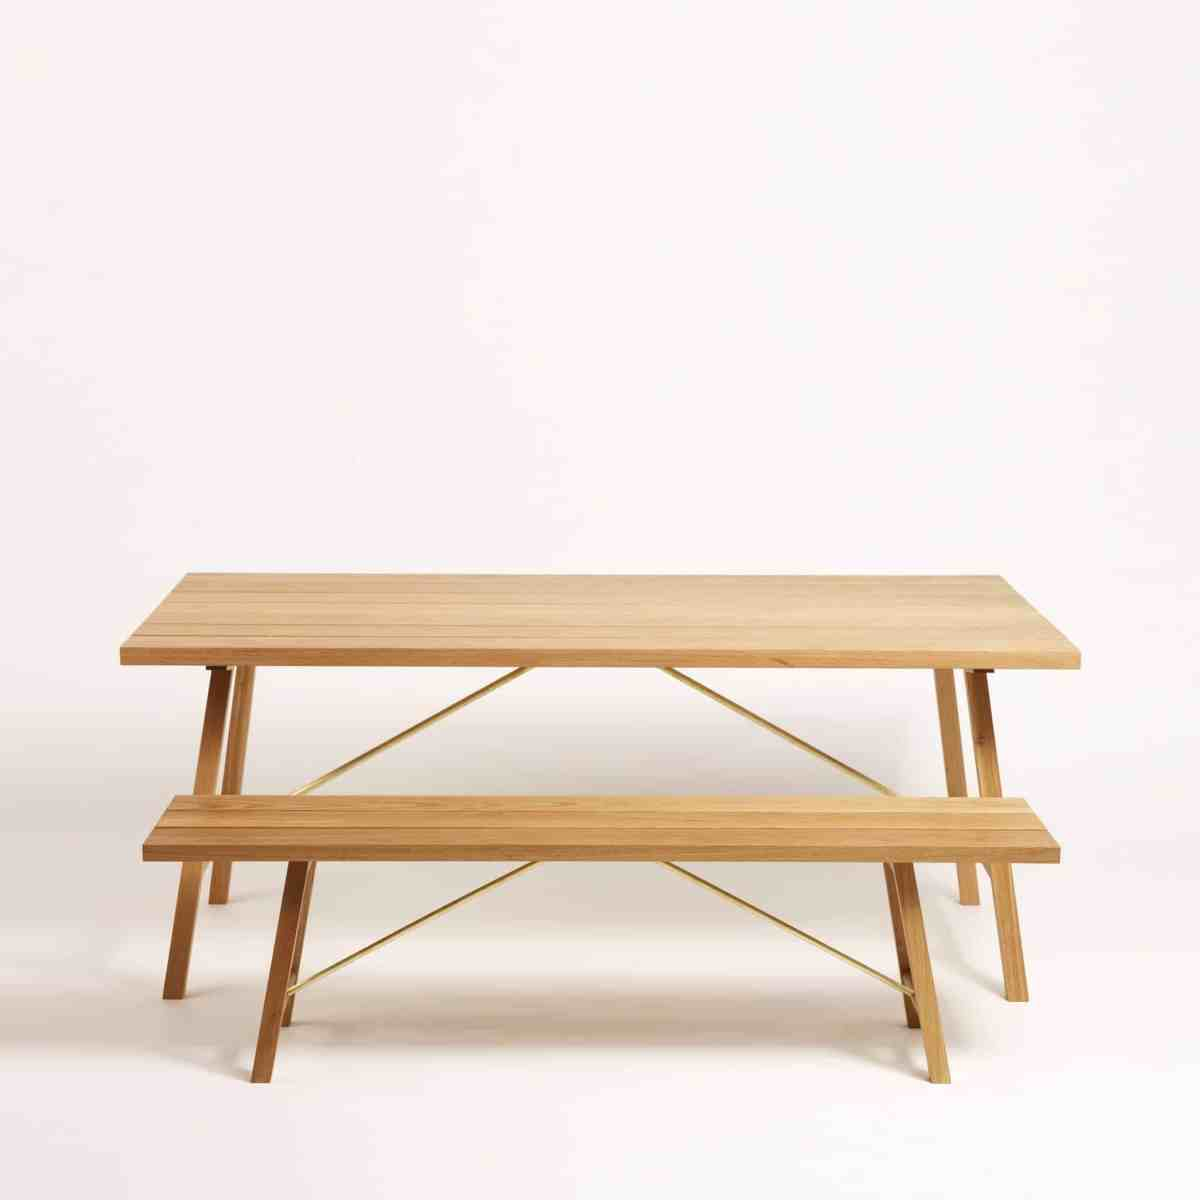 series-two-outdoor-table-another-country-002